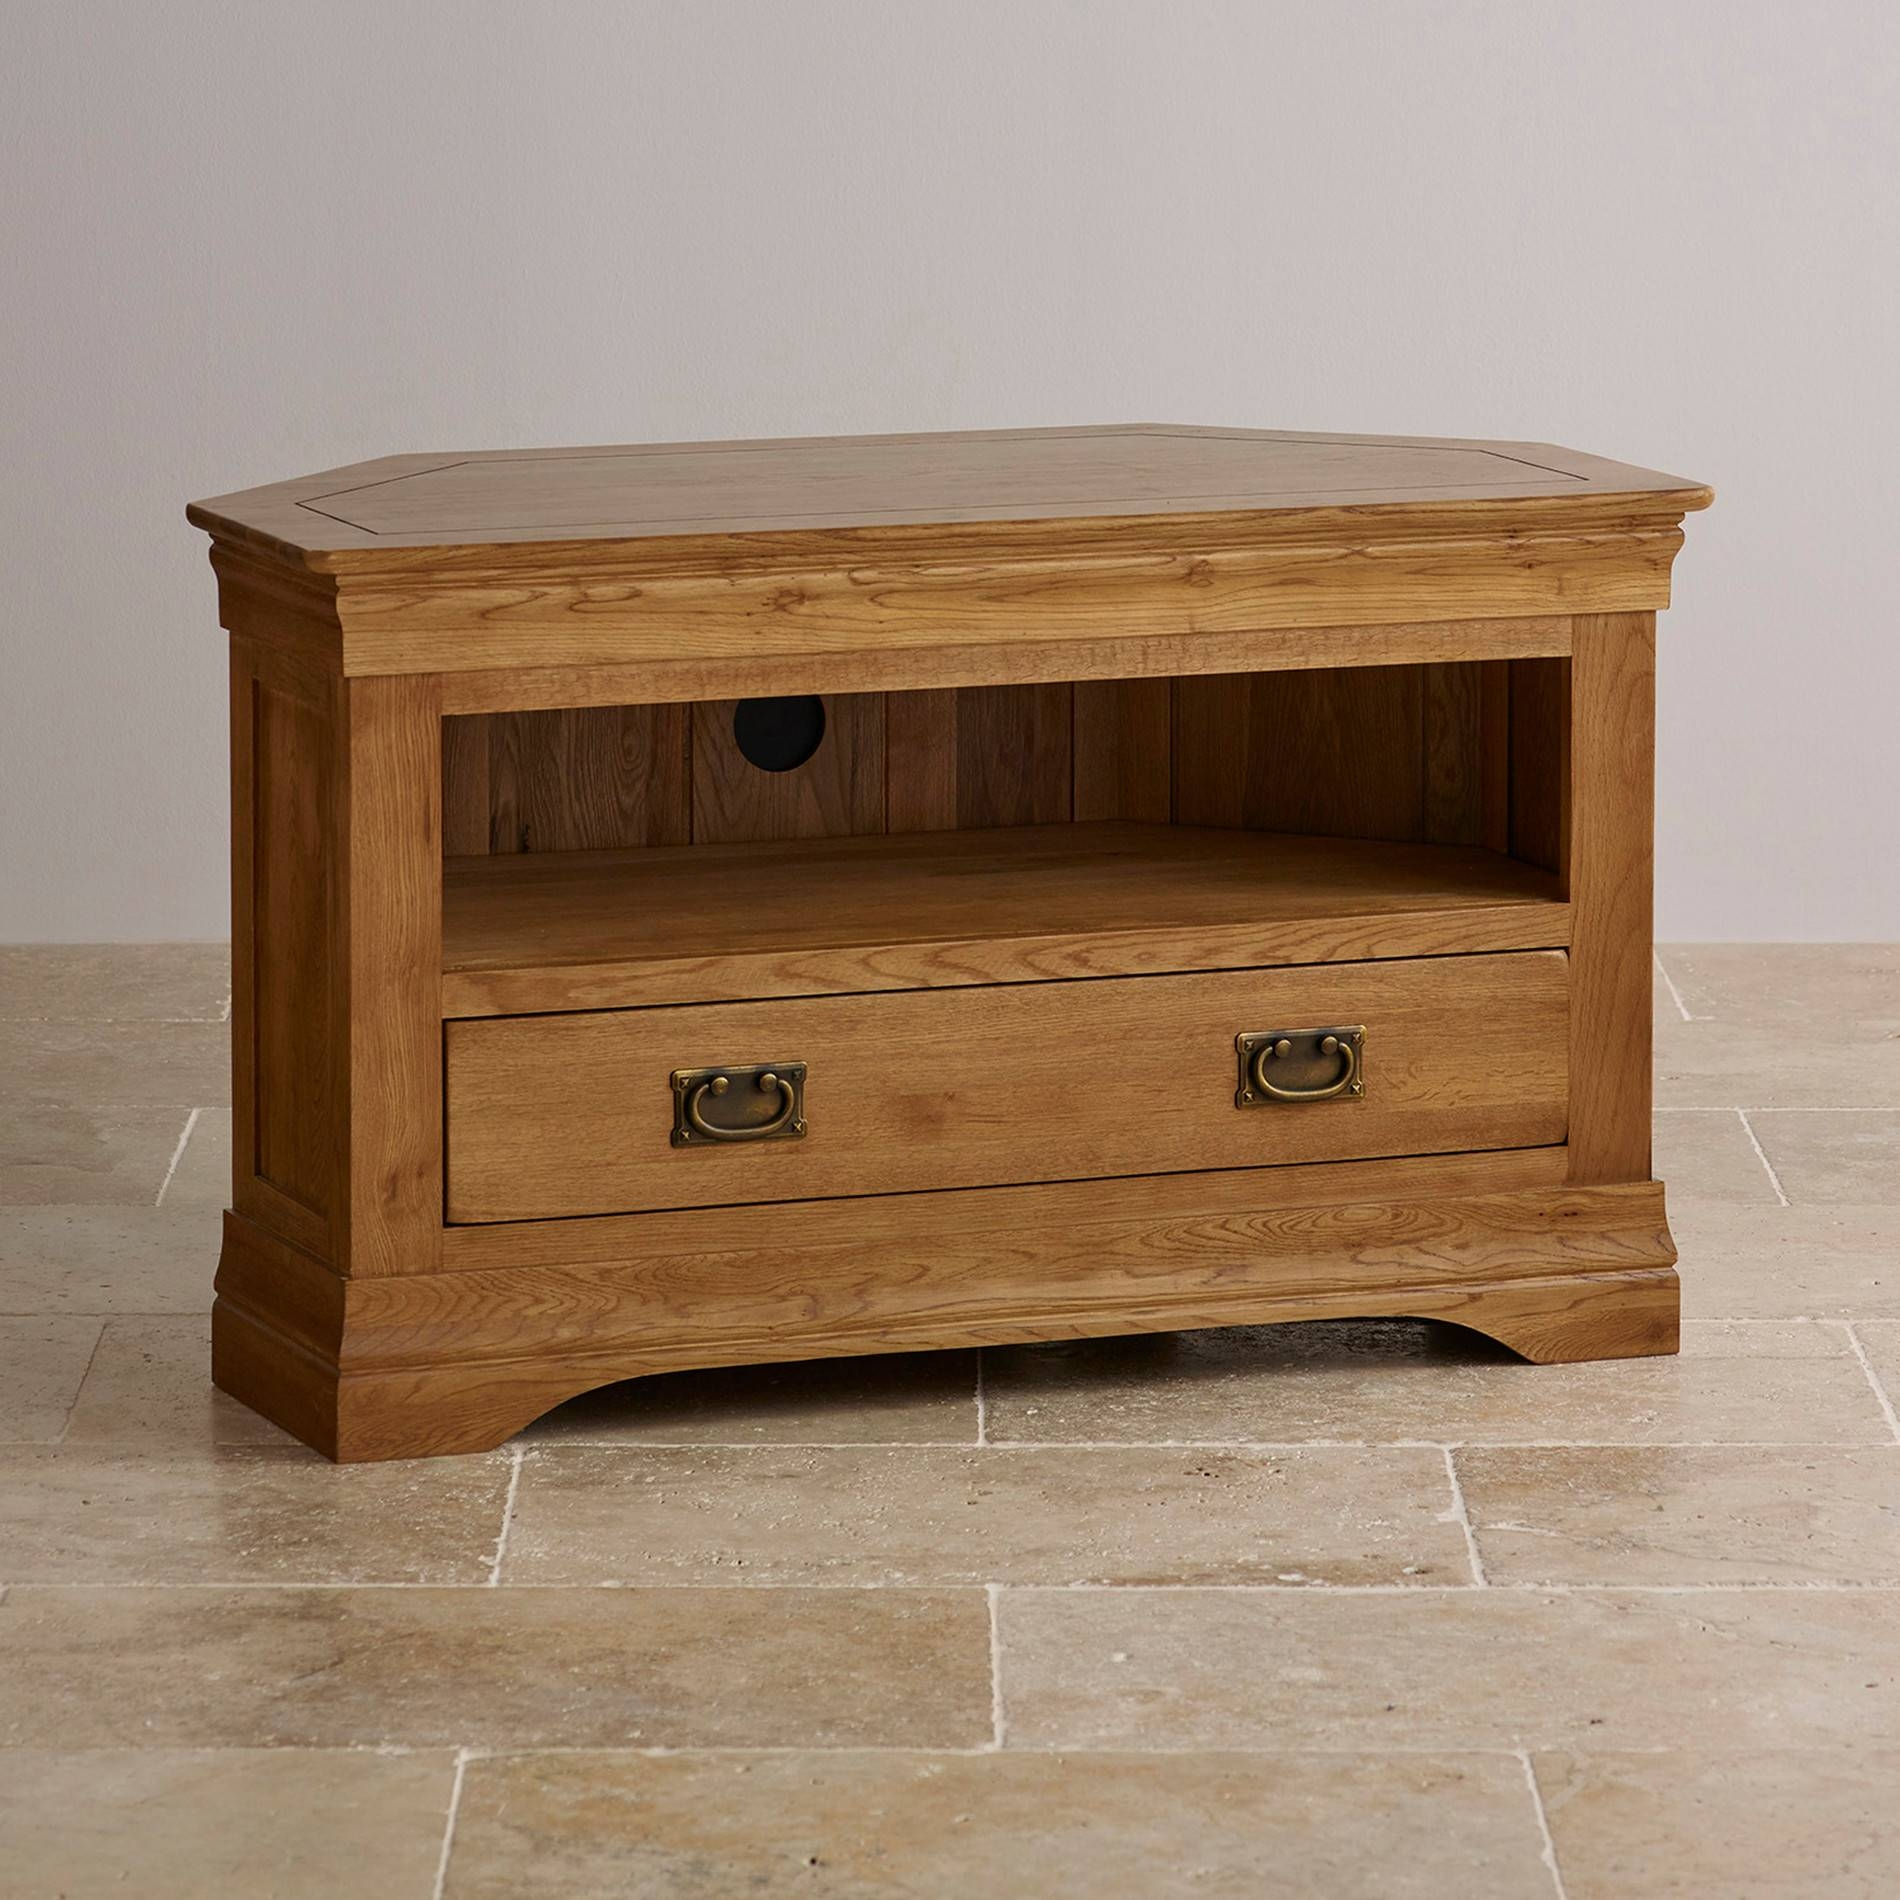 Oak Corner Tv Cabinet - Imanisr within Oak Effect Corner Tv Stand (Image 6 of 15)